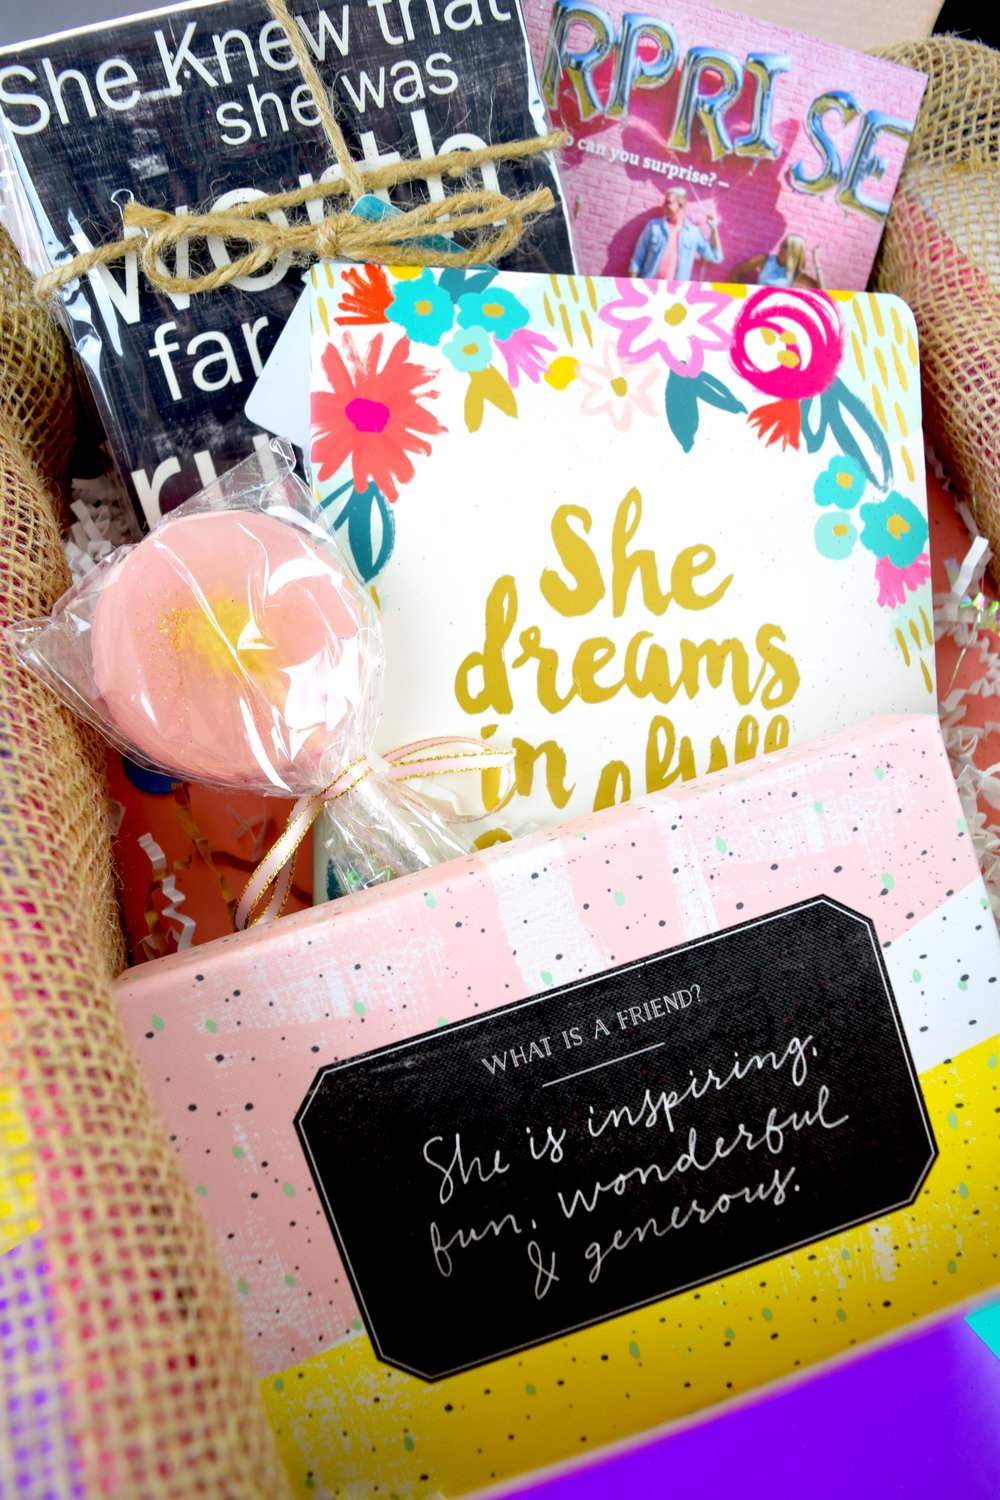 Surprise Gift Co. : Gifts for her